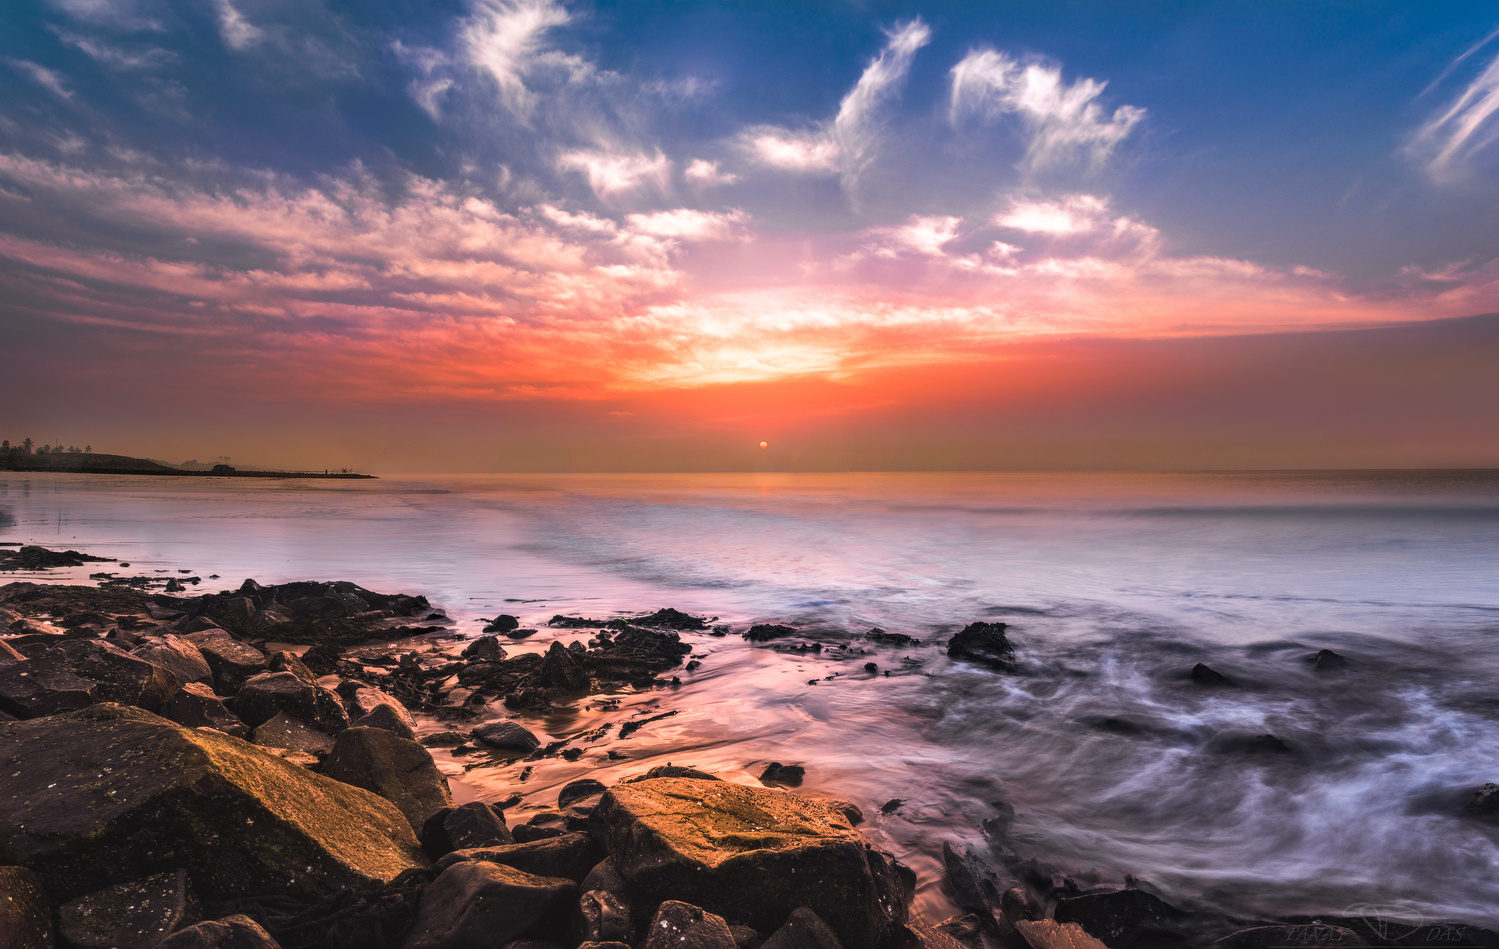 A Not Soo Perfect Seascape  by TANAY DAS